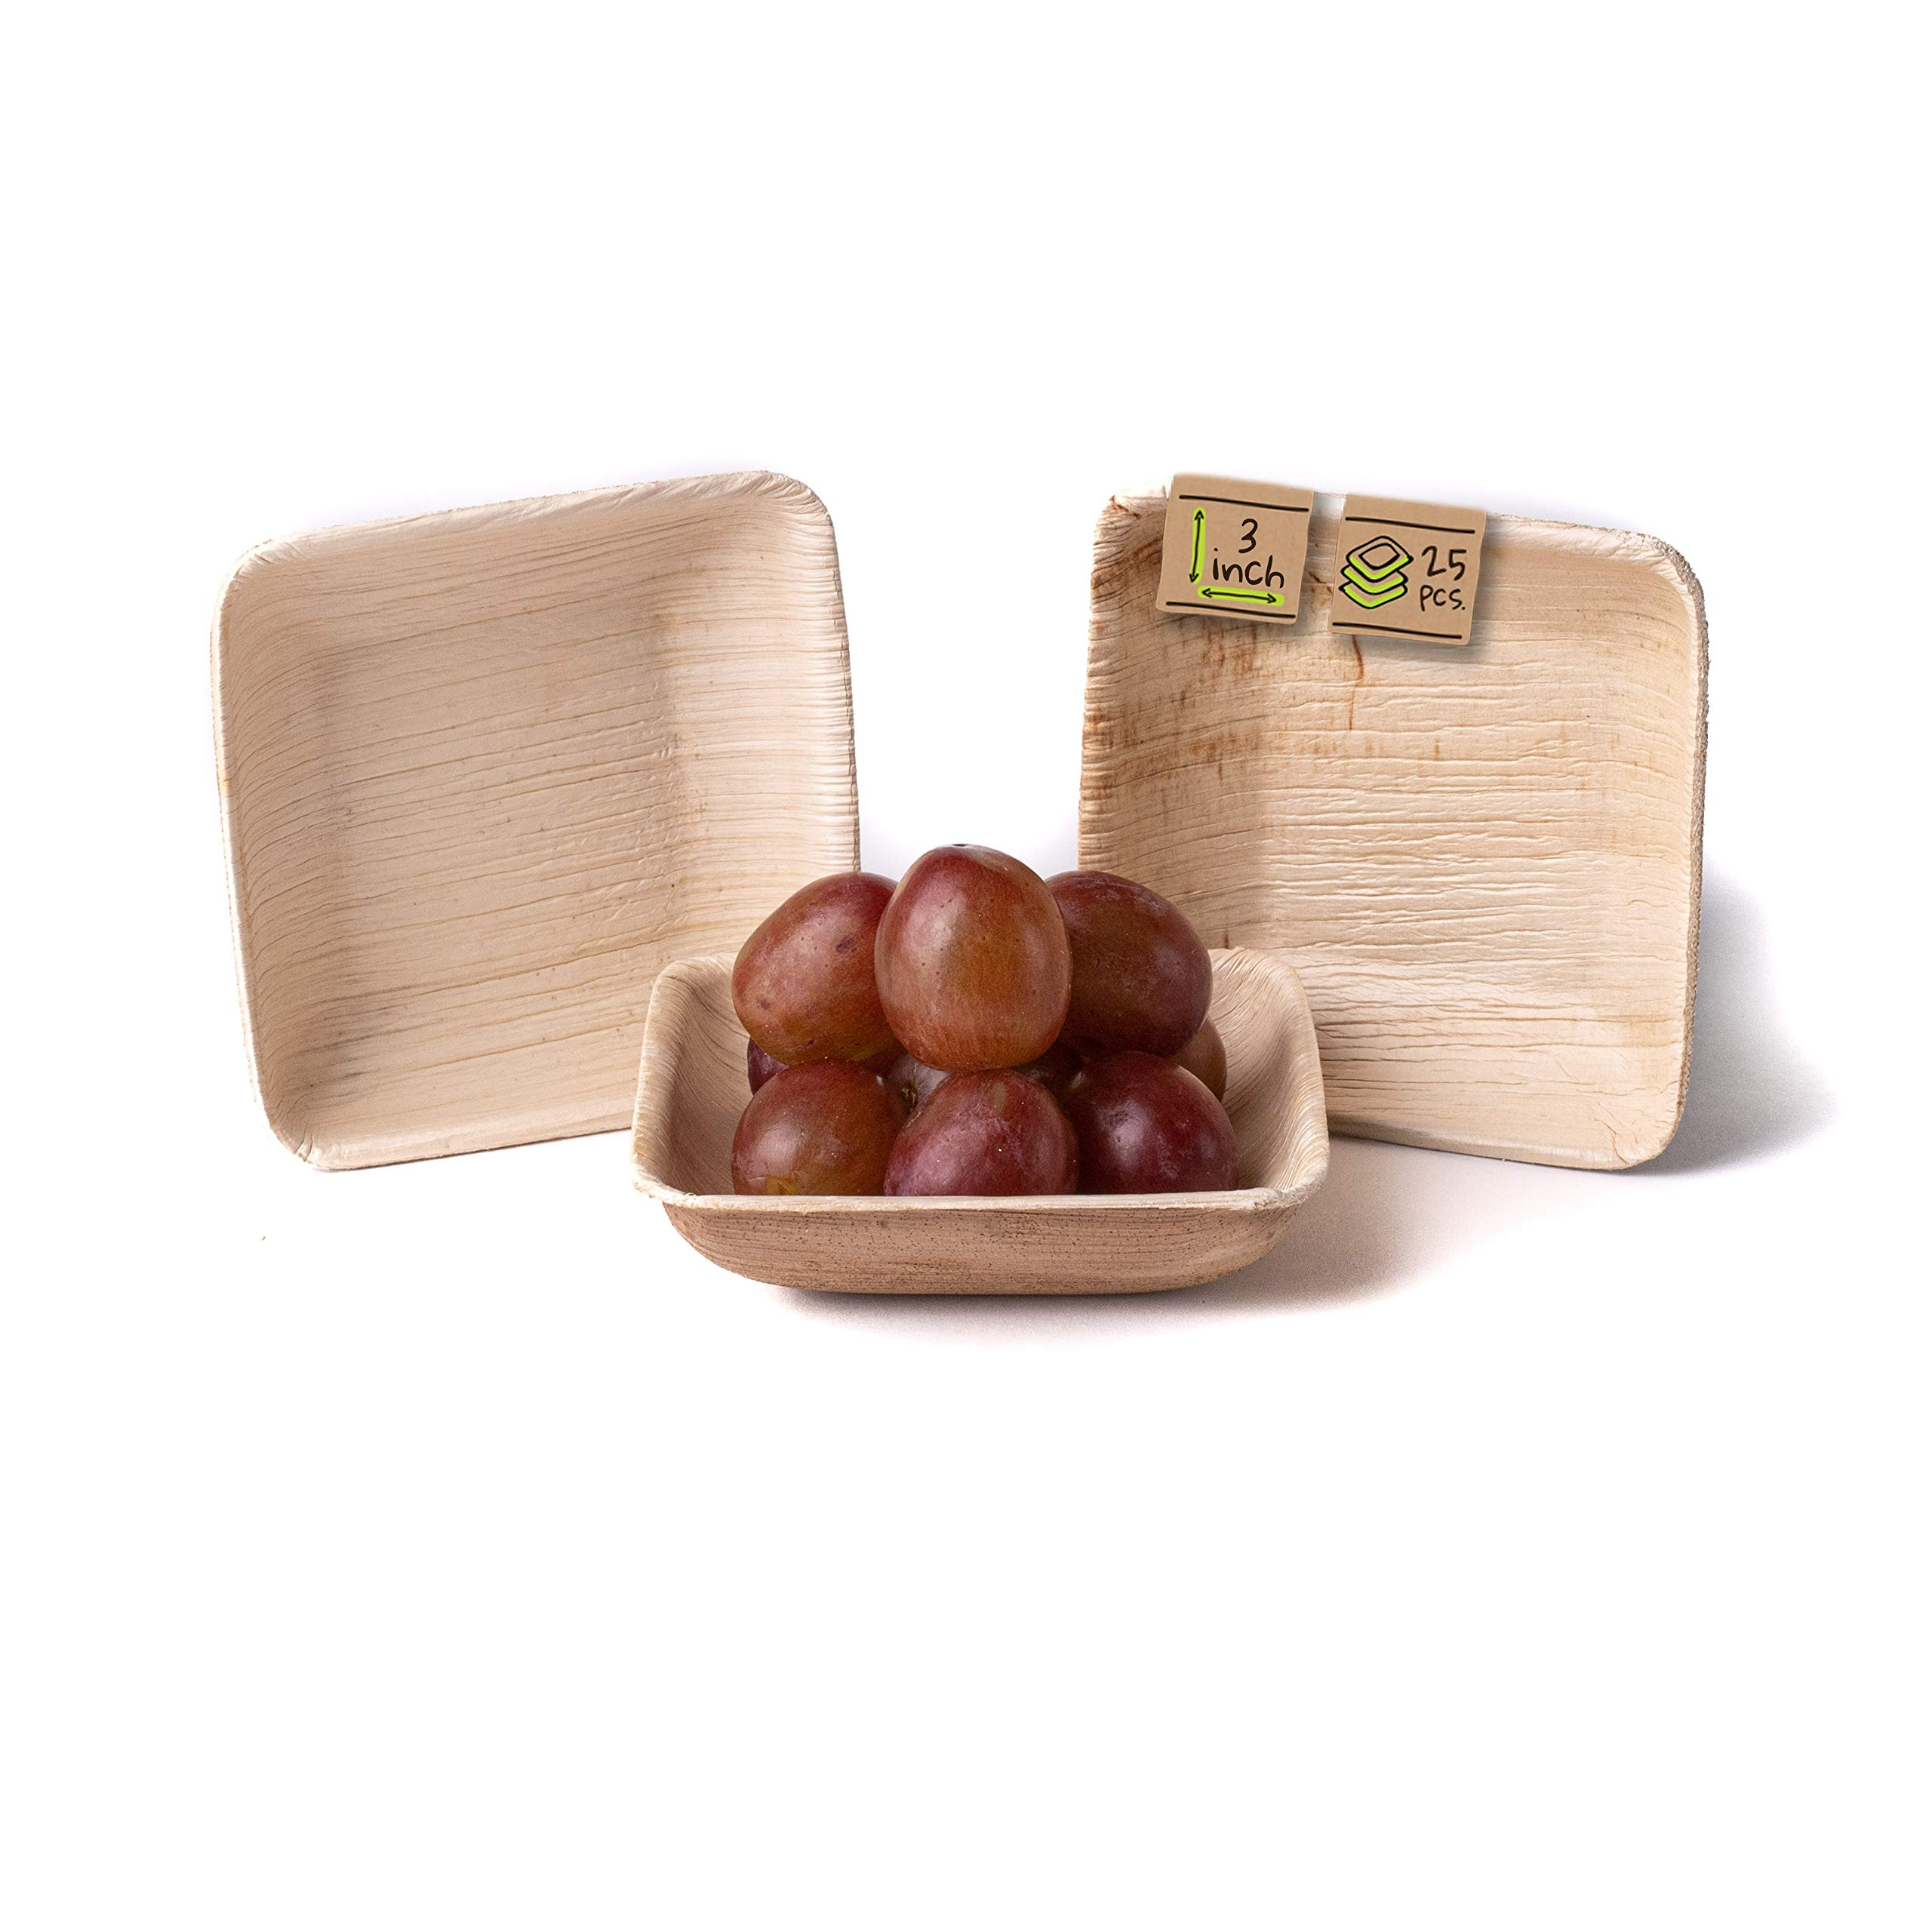 """Naturally Chic Compostable Biodegradable Disposable Plates - Palm Leaf 3"""" Small, Square Dinnerware Set - Eco Friendly Alternative - Party, Wedding, Event Plates (25 Pack)"""